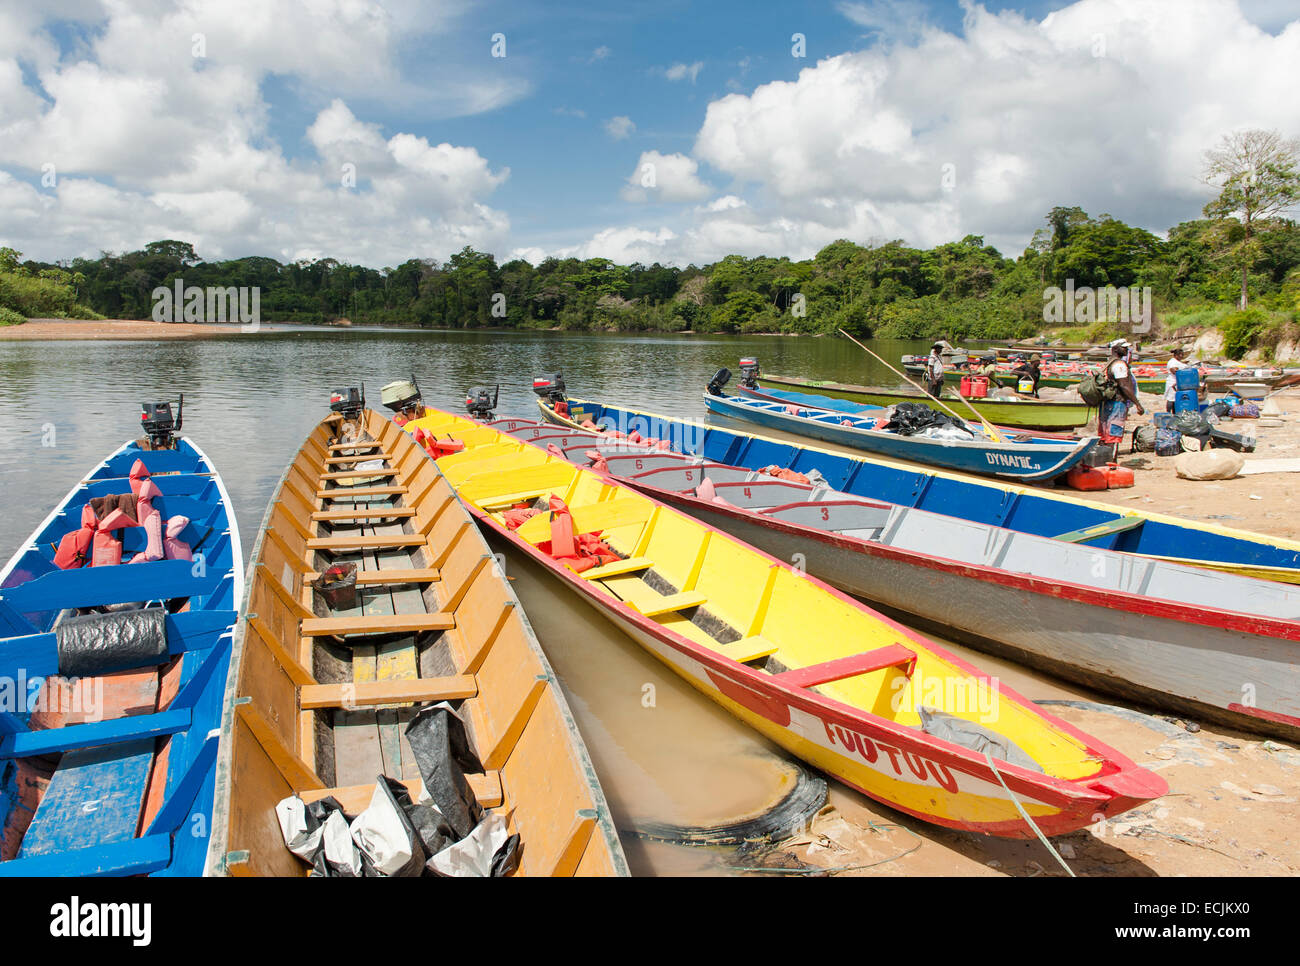 Colourful karjoles (canoes) at the Suriname River inland port of Atjoni, Pokigron, Suriname - Stock Image